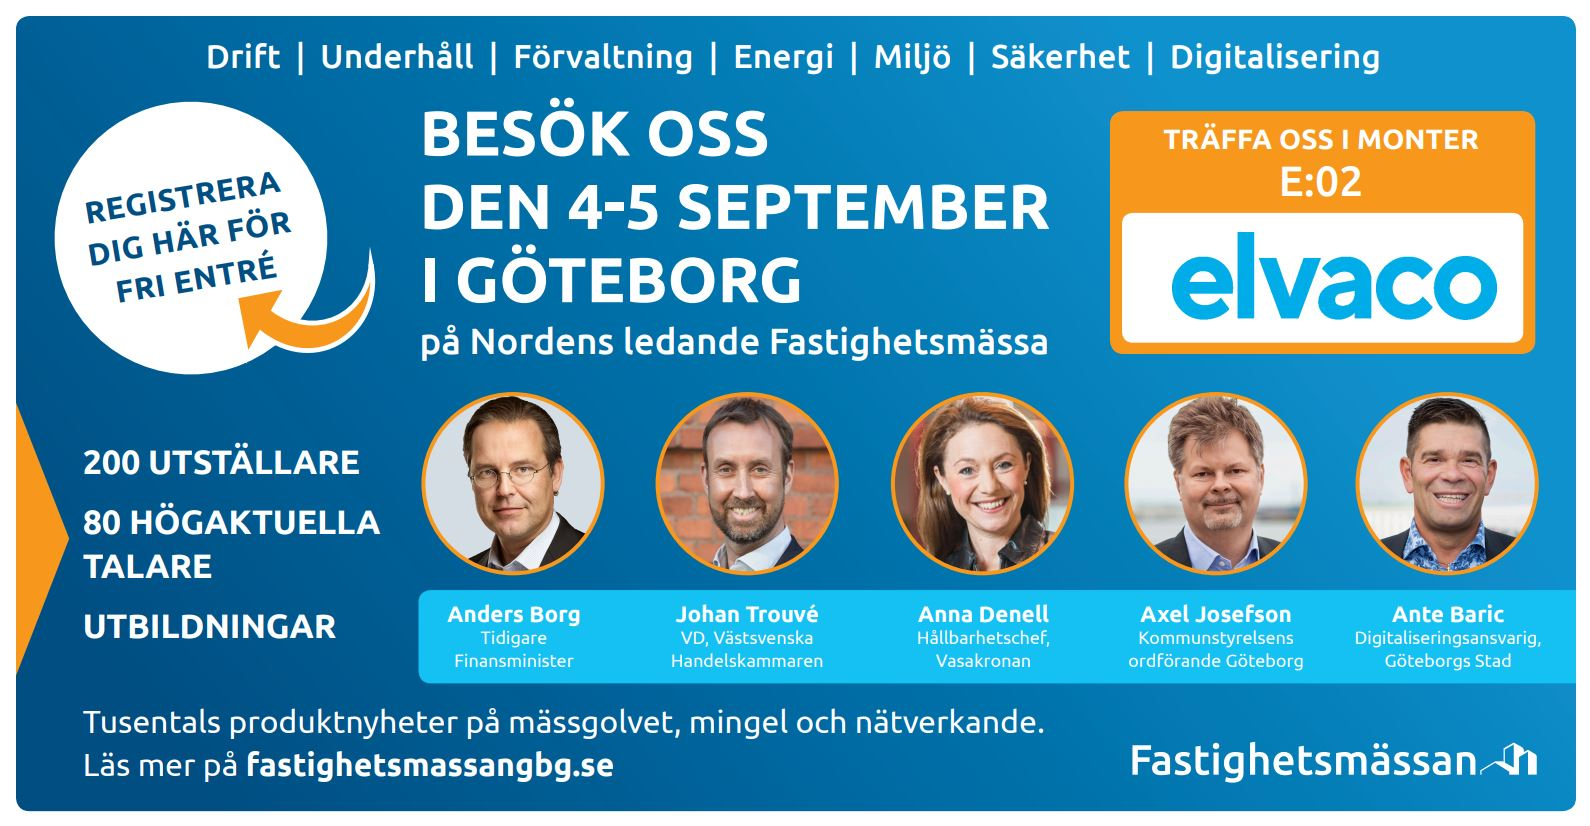 Elvaco is exhibiting at Fastighetsmässan in Gothenburg on September 4-5